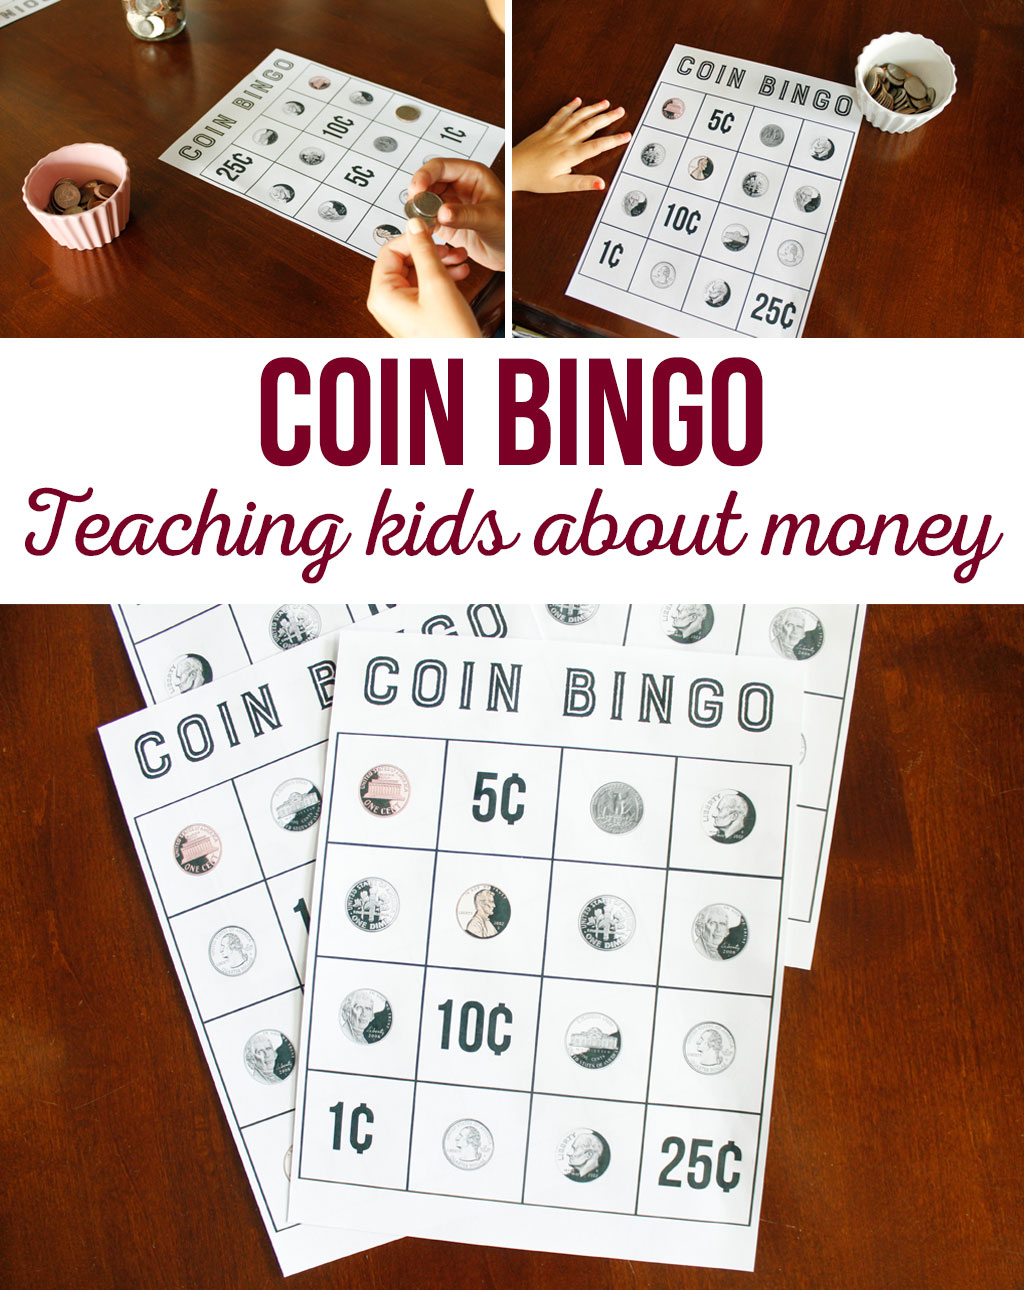 Coin Bingo Free Printable - The Crafting Chicks - Free Printable Game Money